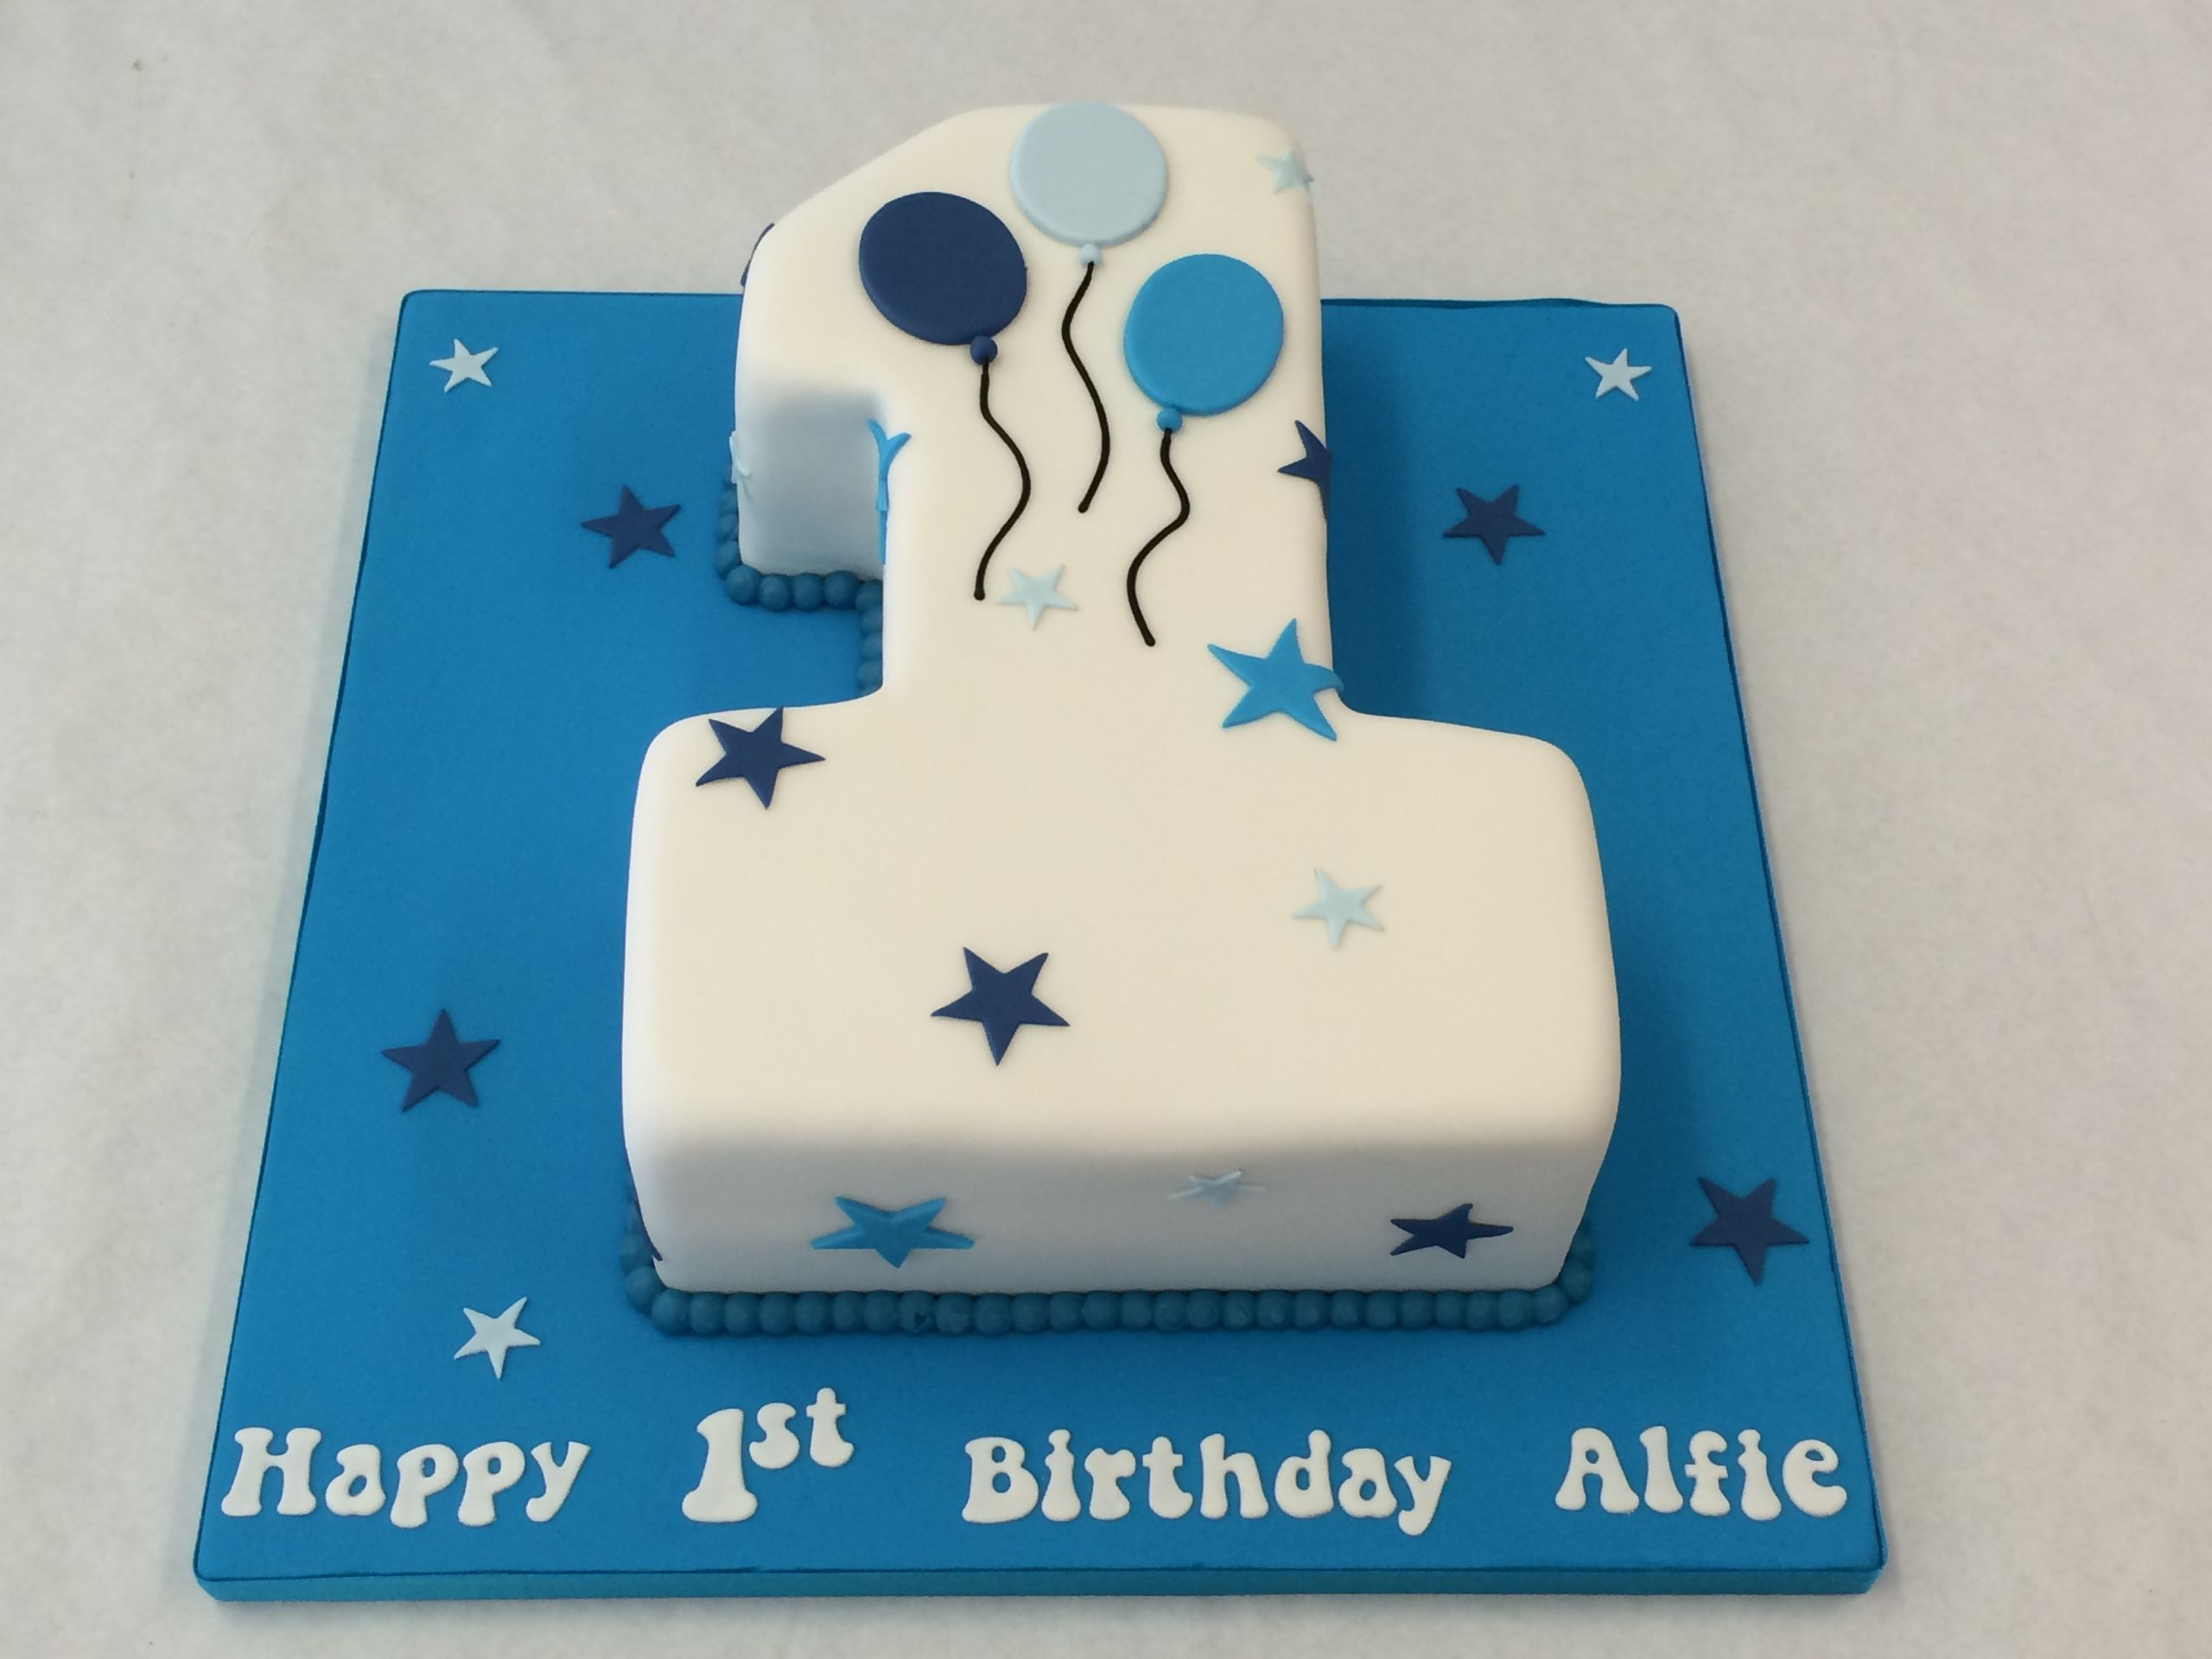 Number 1 Birthday Cake  Small Number e Cake with Balloons Children s Birthday